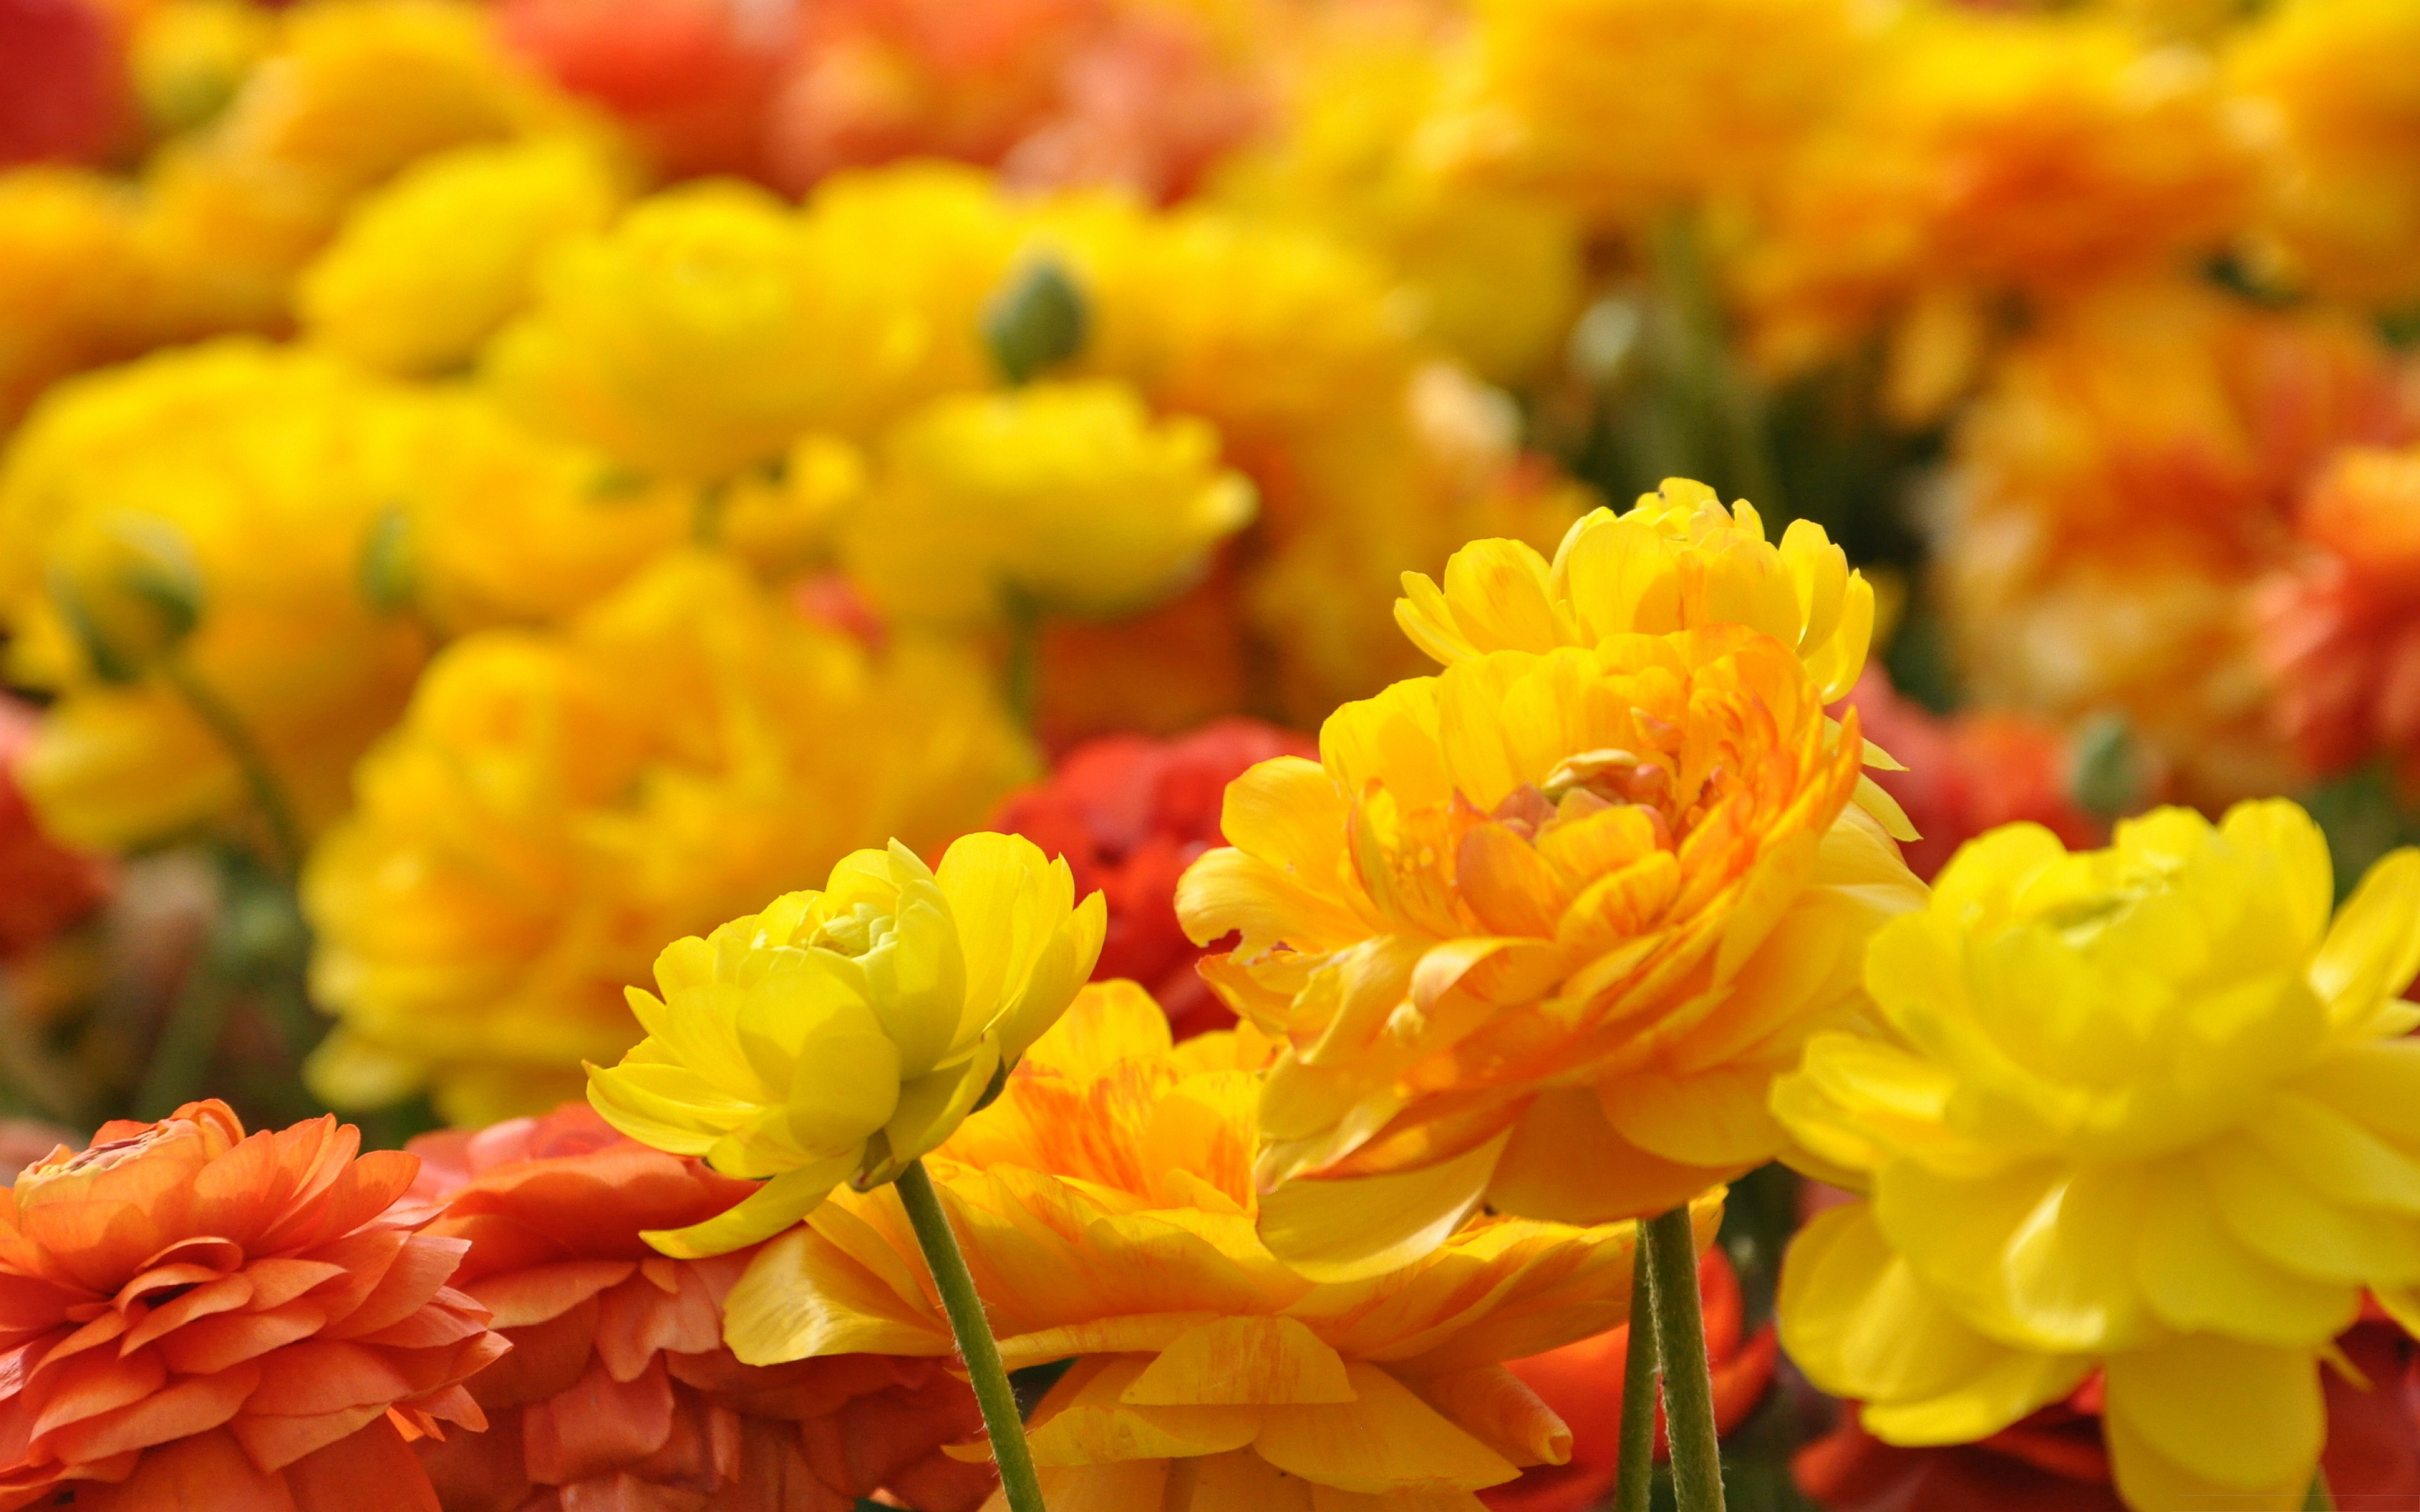 Images Of Yellow Flowers Wallpaper Hd Spacehero